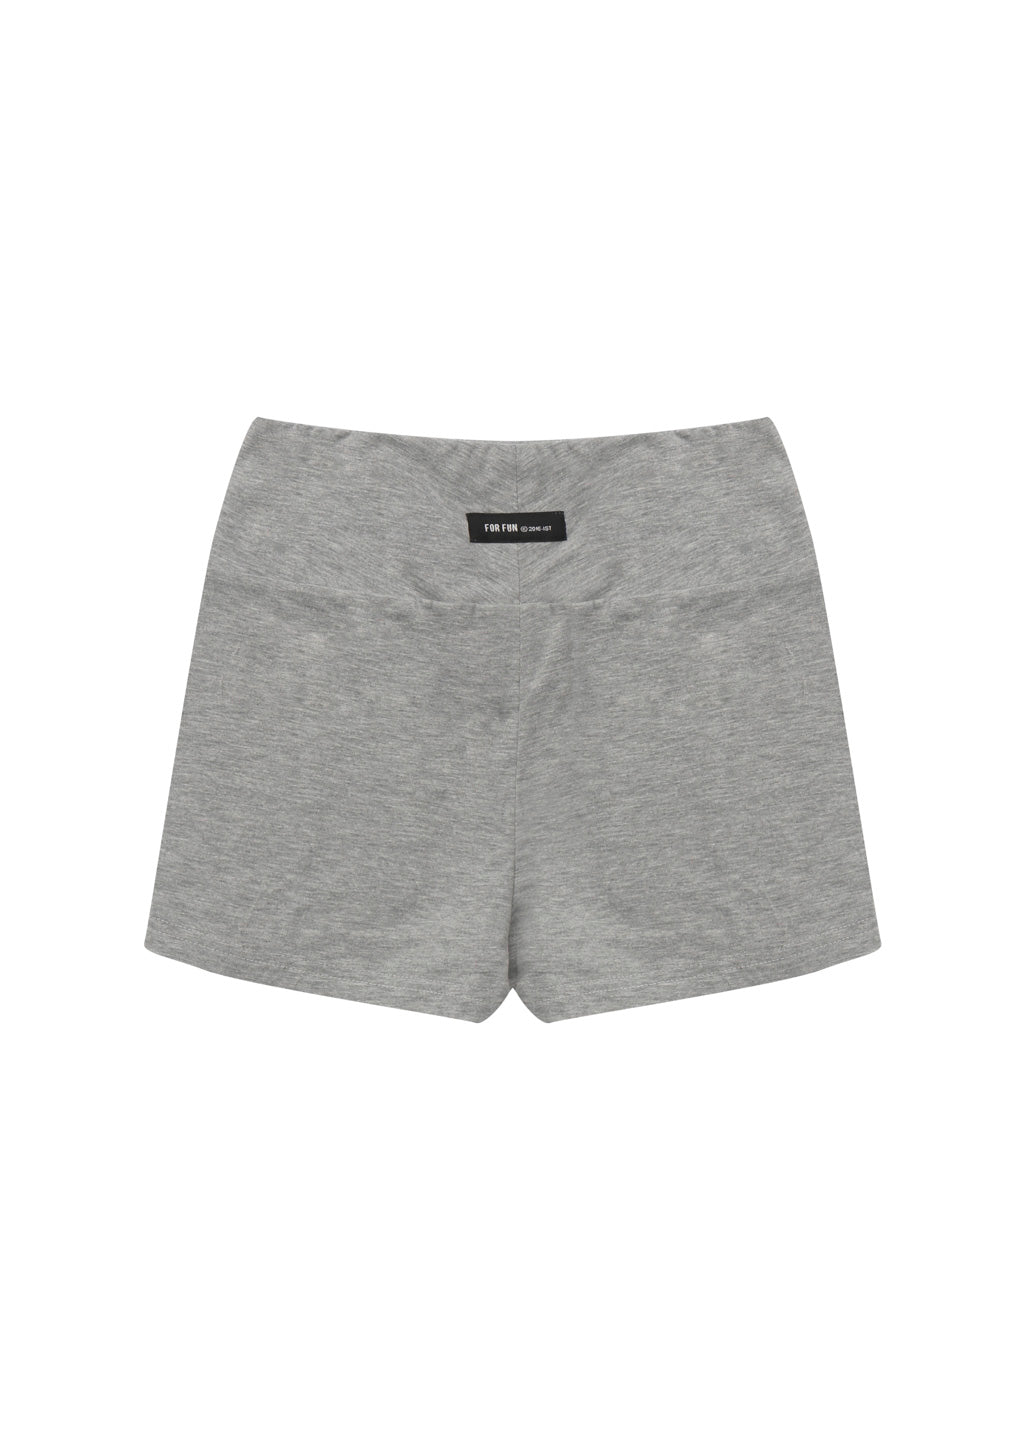 FF / High Waist Short Tight (grey)